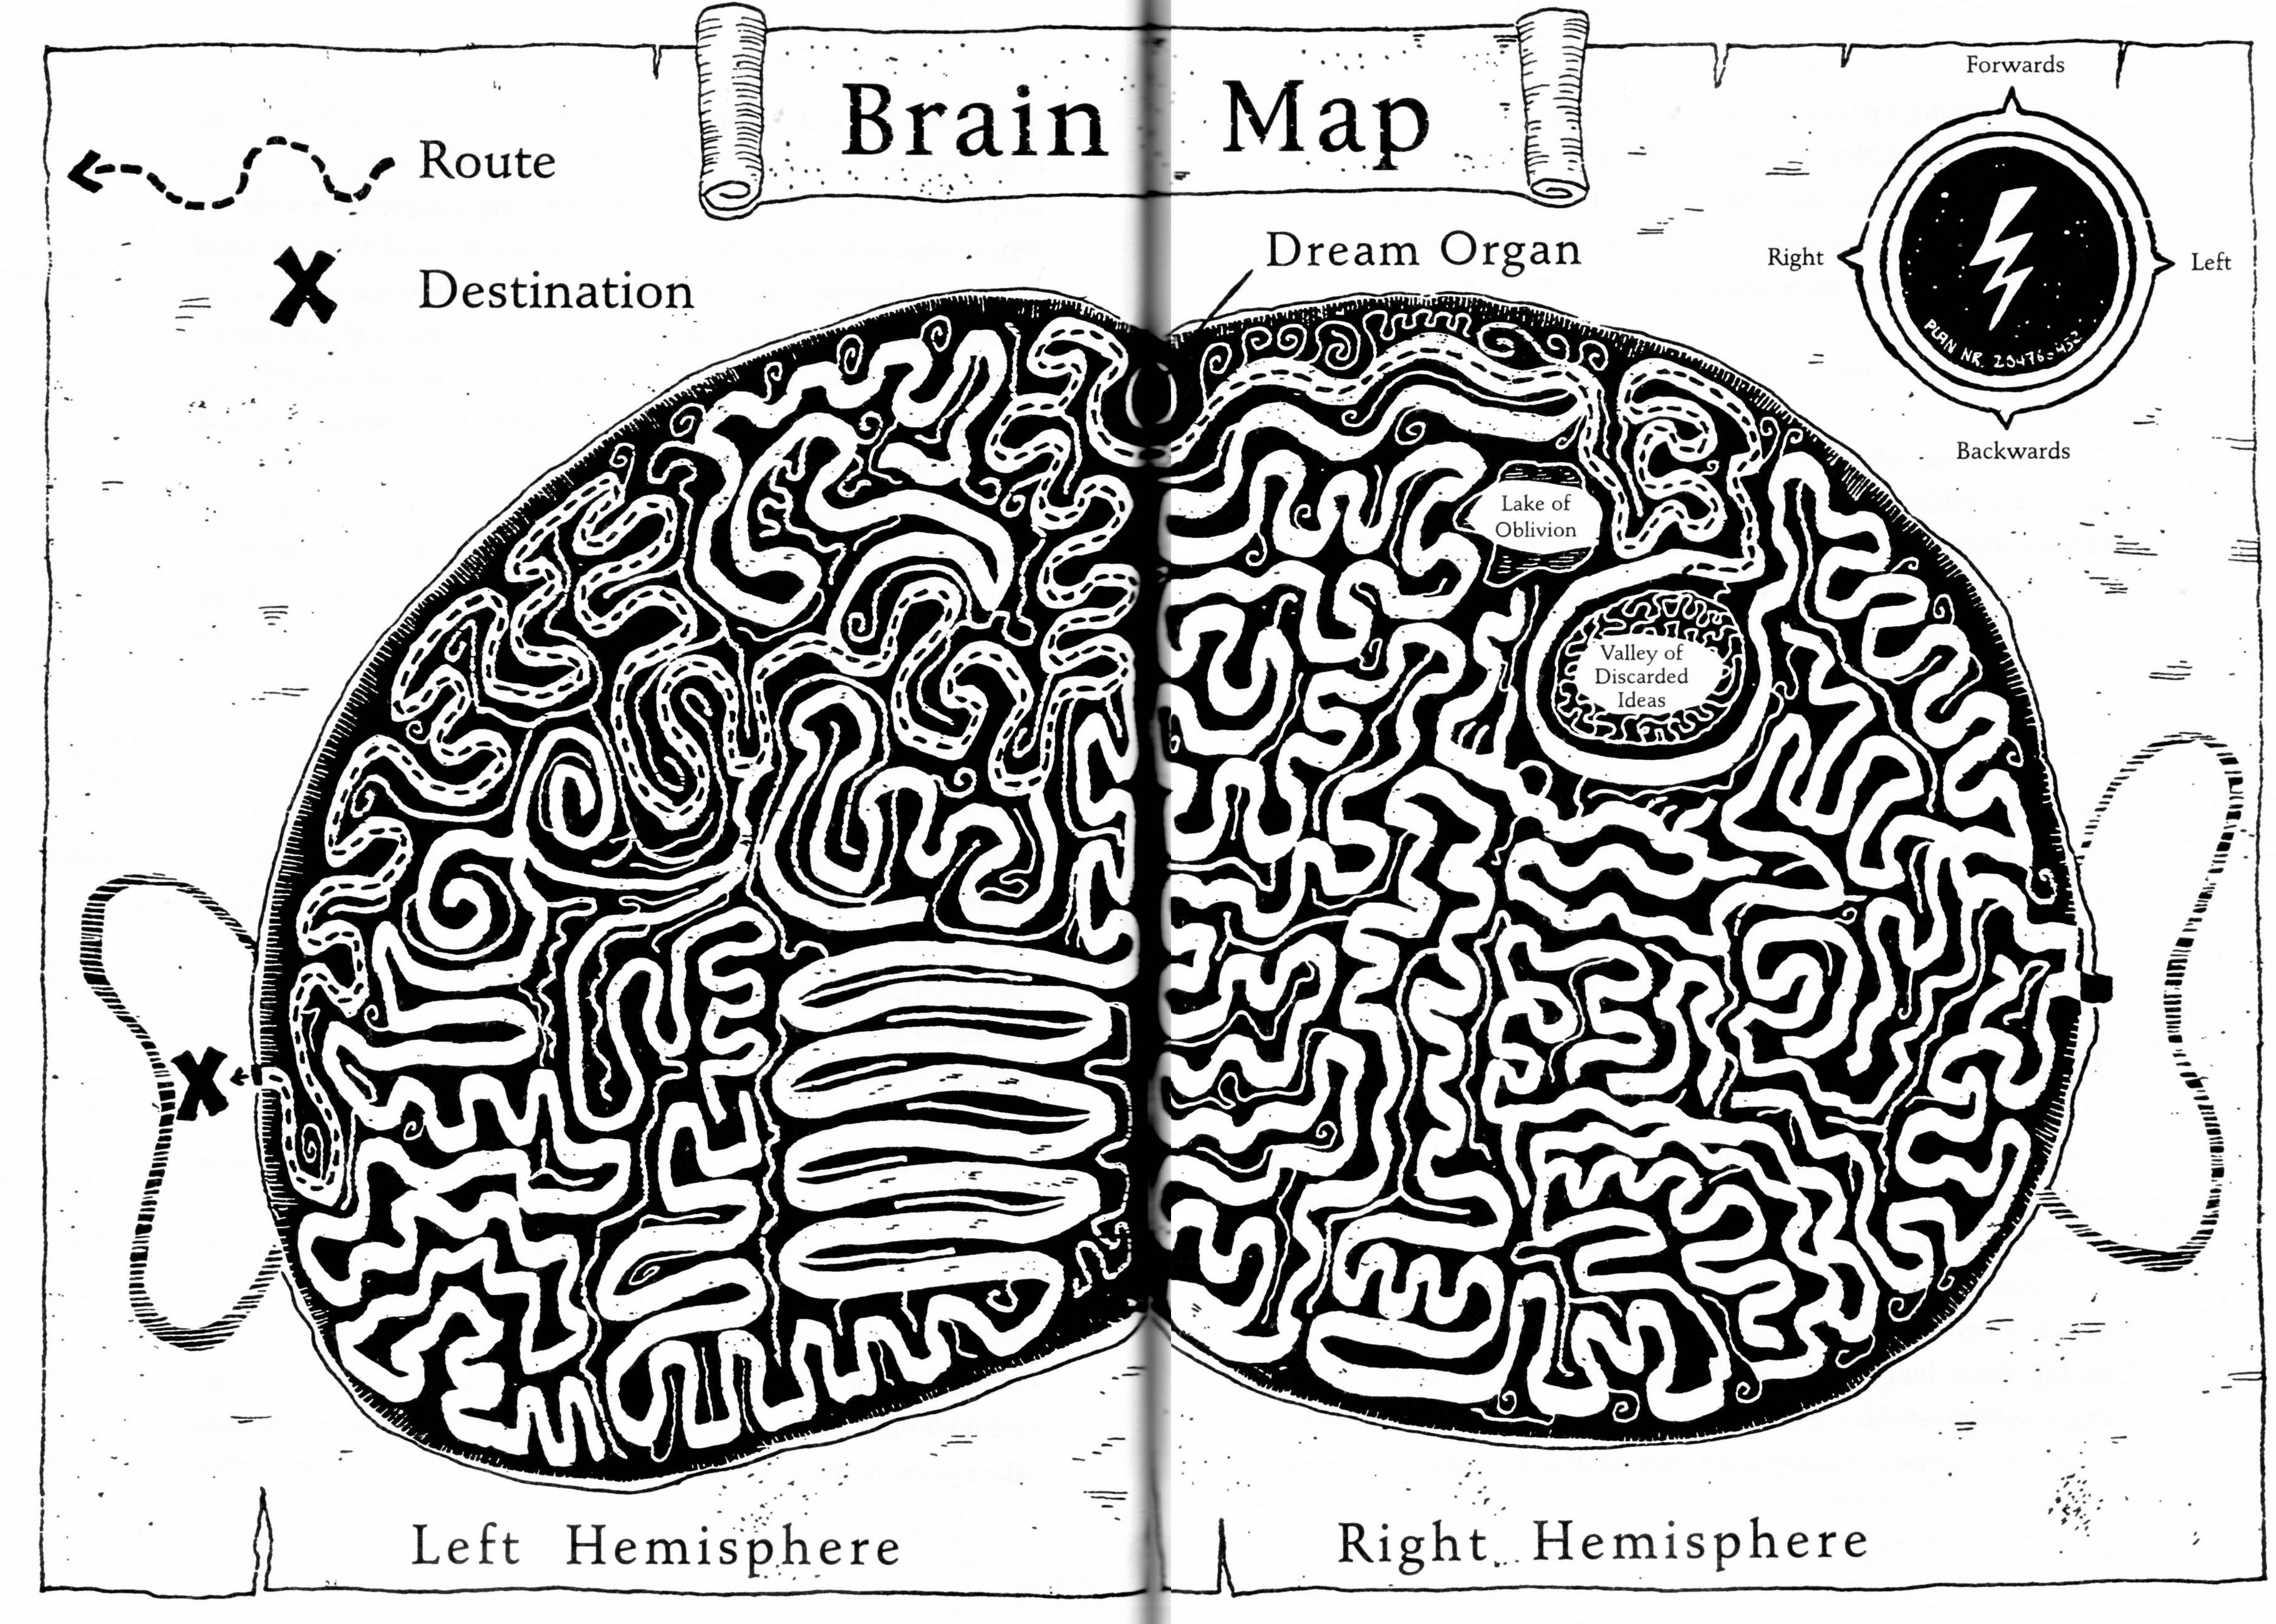 Bollogg Brain Map from the wonderful book The 13 Lives of Captain